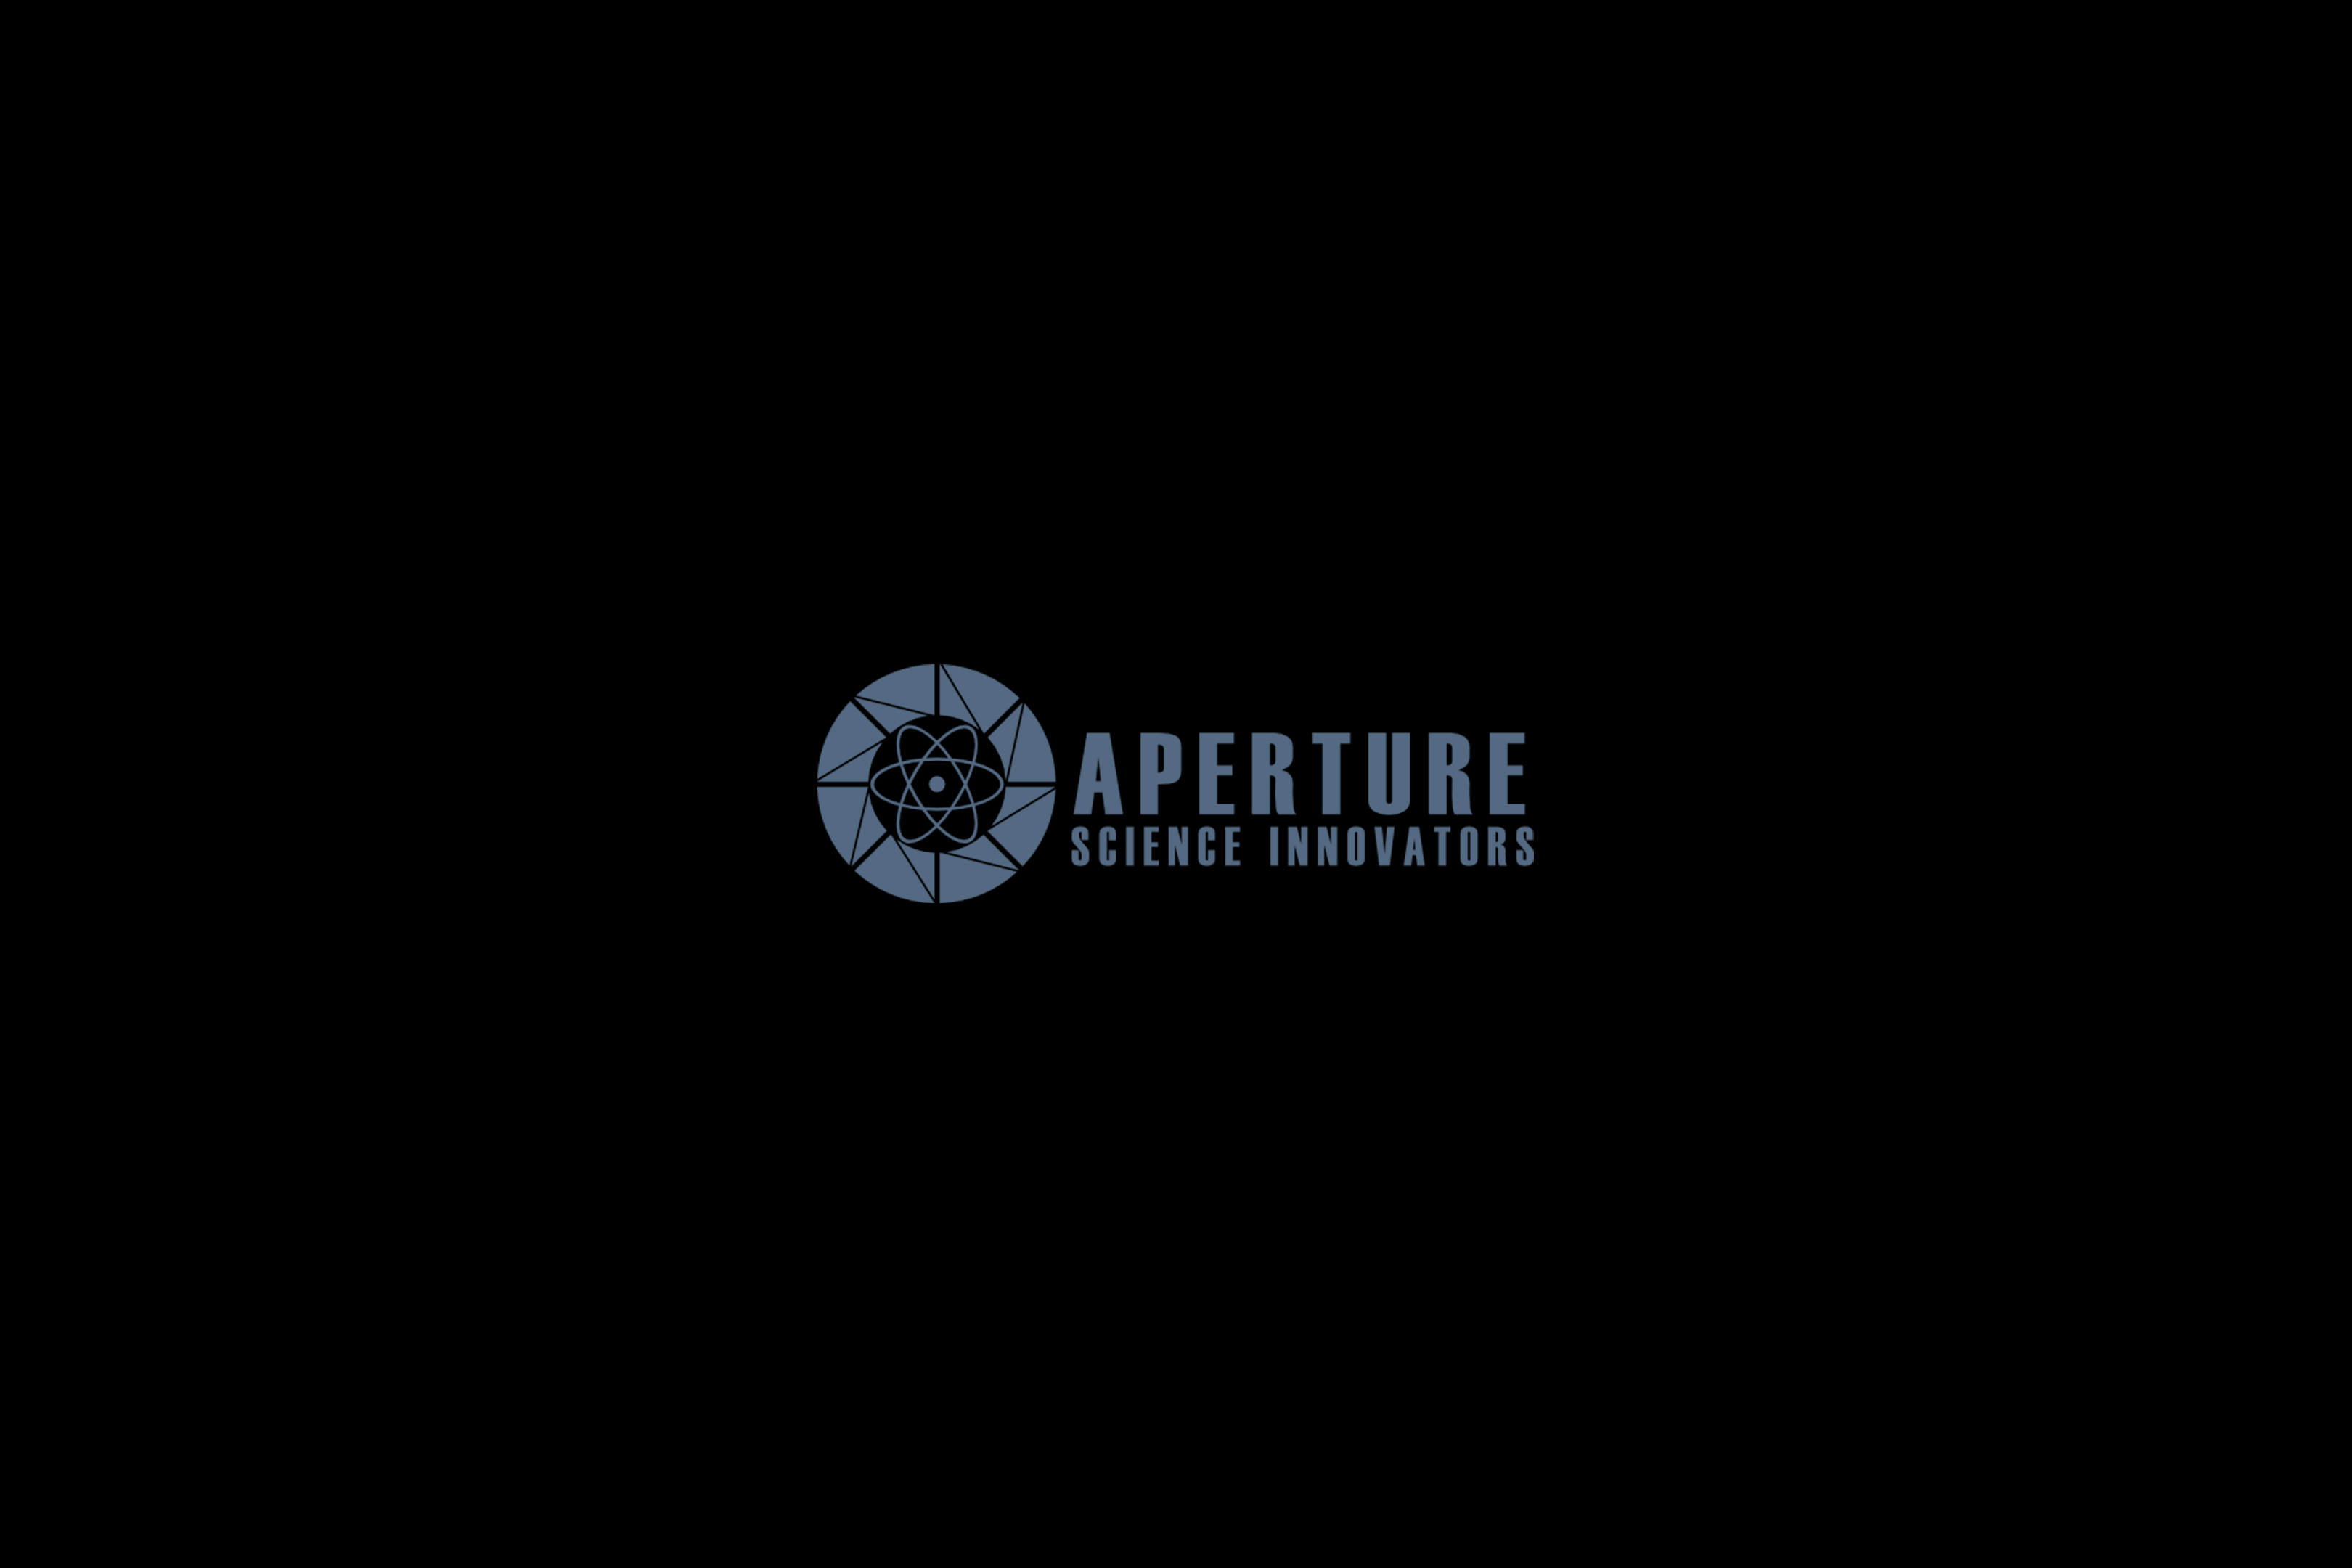 Widescreen Wallpapers of Aperture › Amazing Images